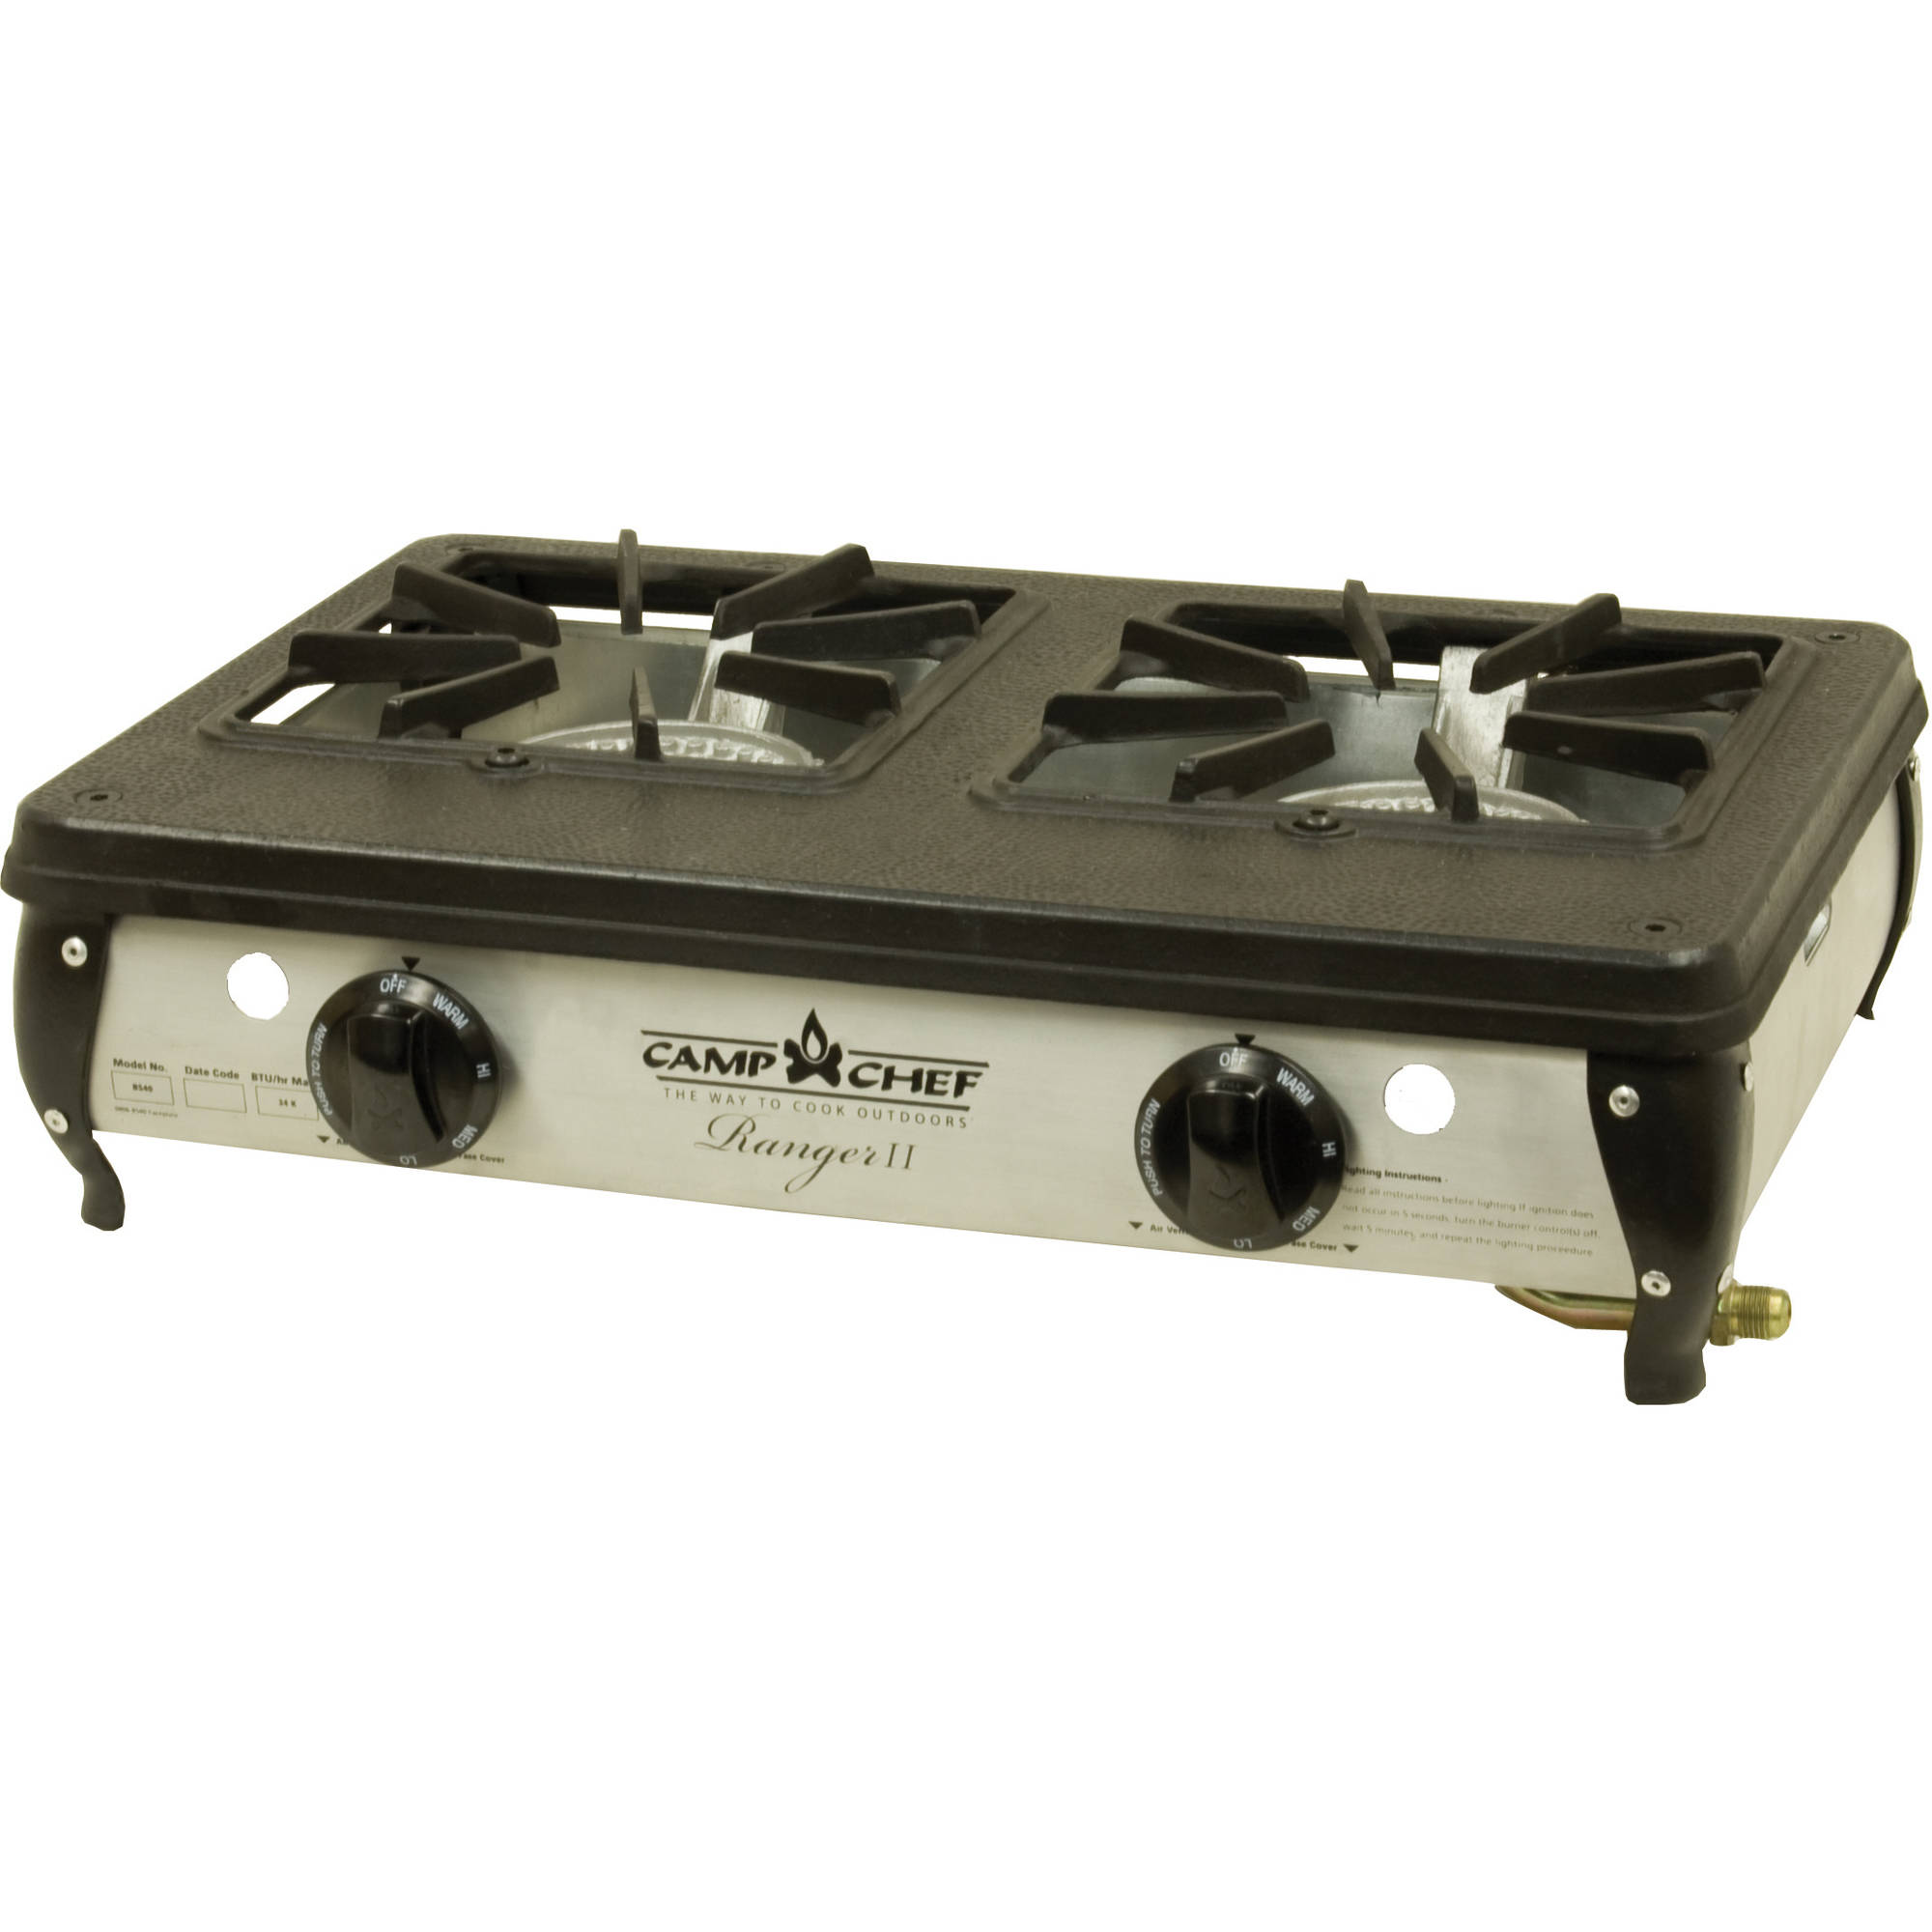 Camp Chef Ranger II Double Burner Table Top Camp Stove